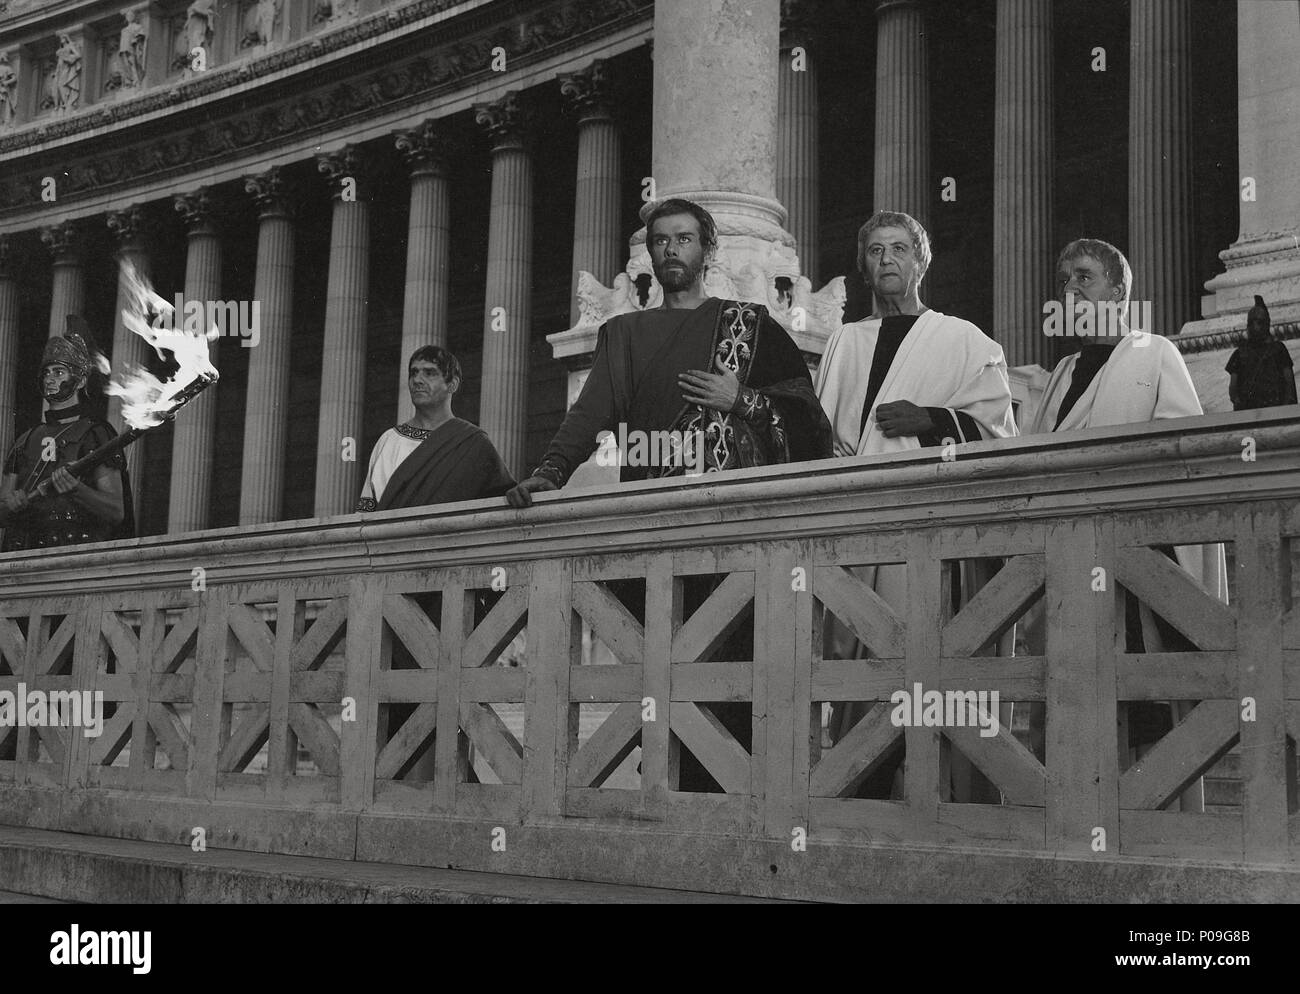 Original Film Title Constantino Il Grande English Title Constantine The Great Film Director Lionello De Felice Year 1962 Stars Massimo Serato Stock Photo Alamy